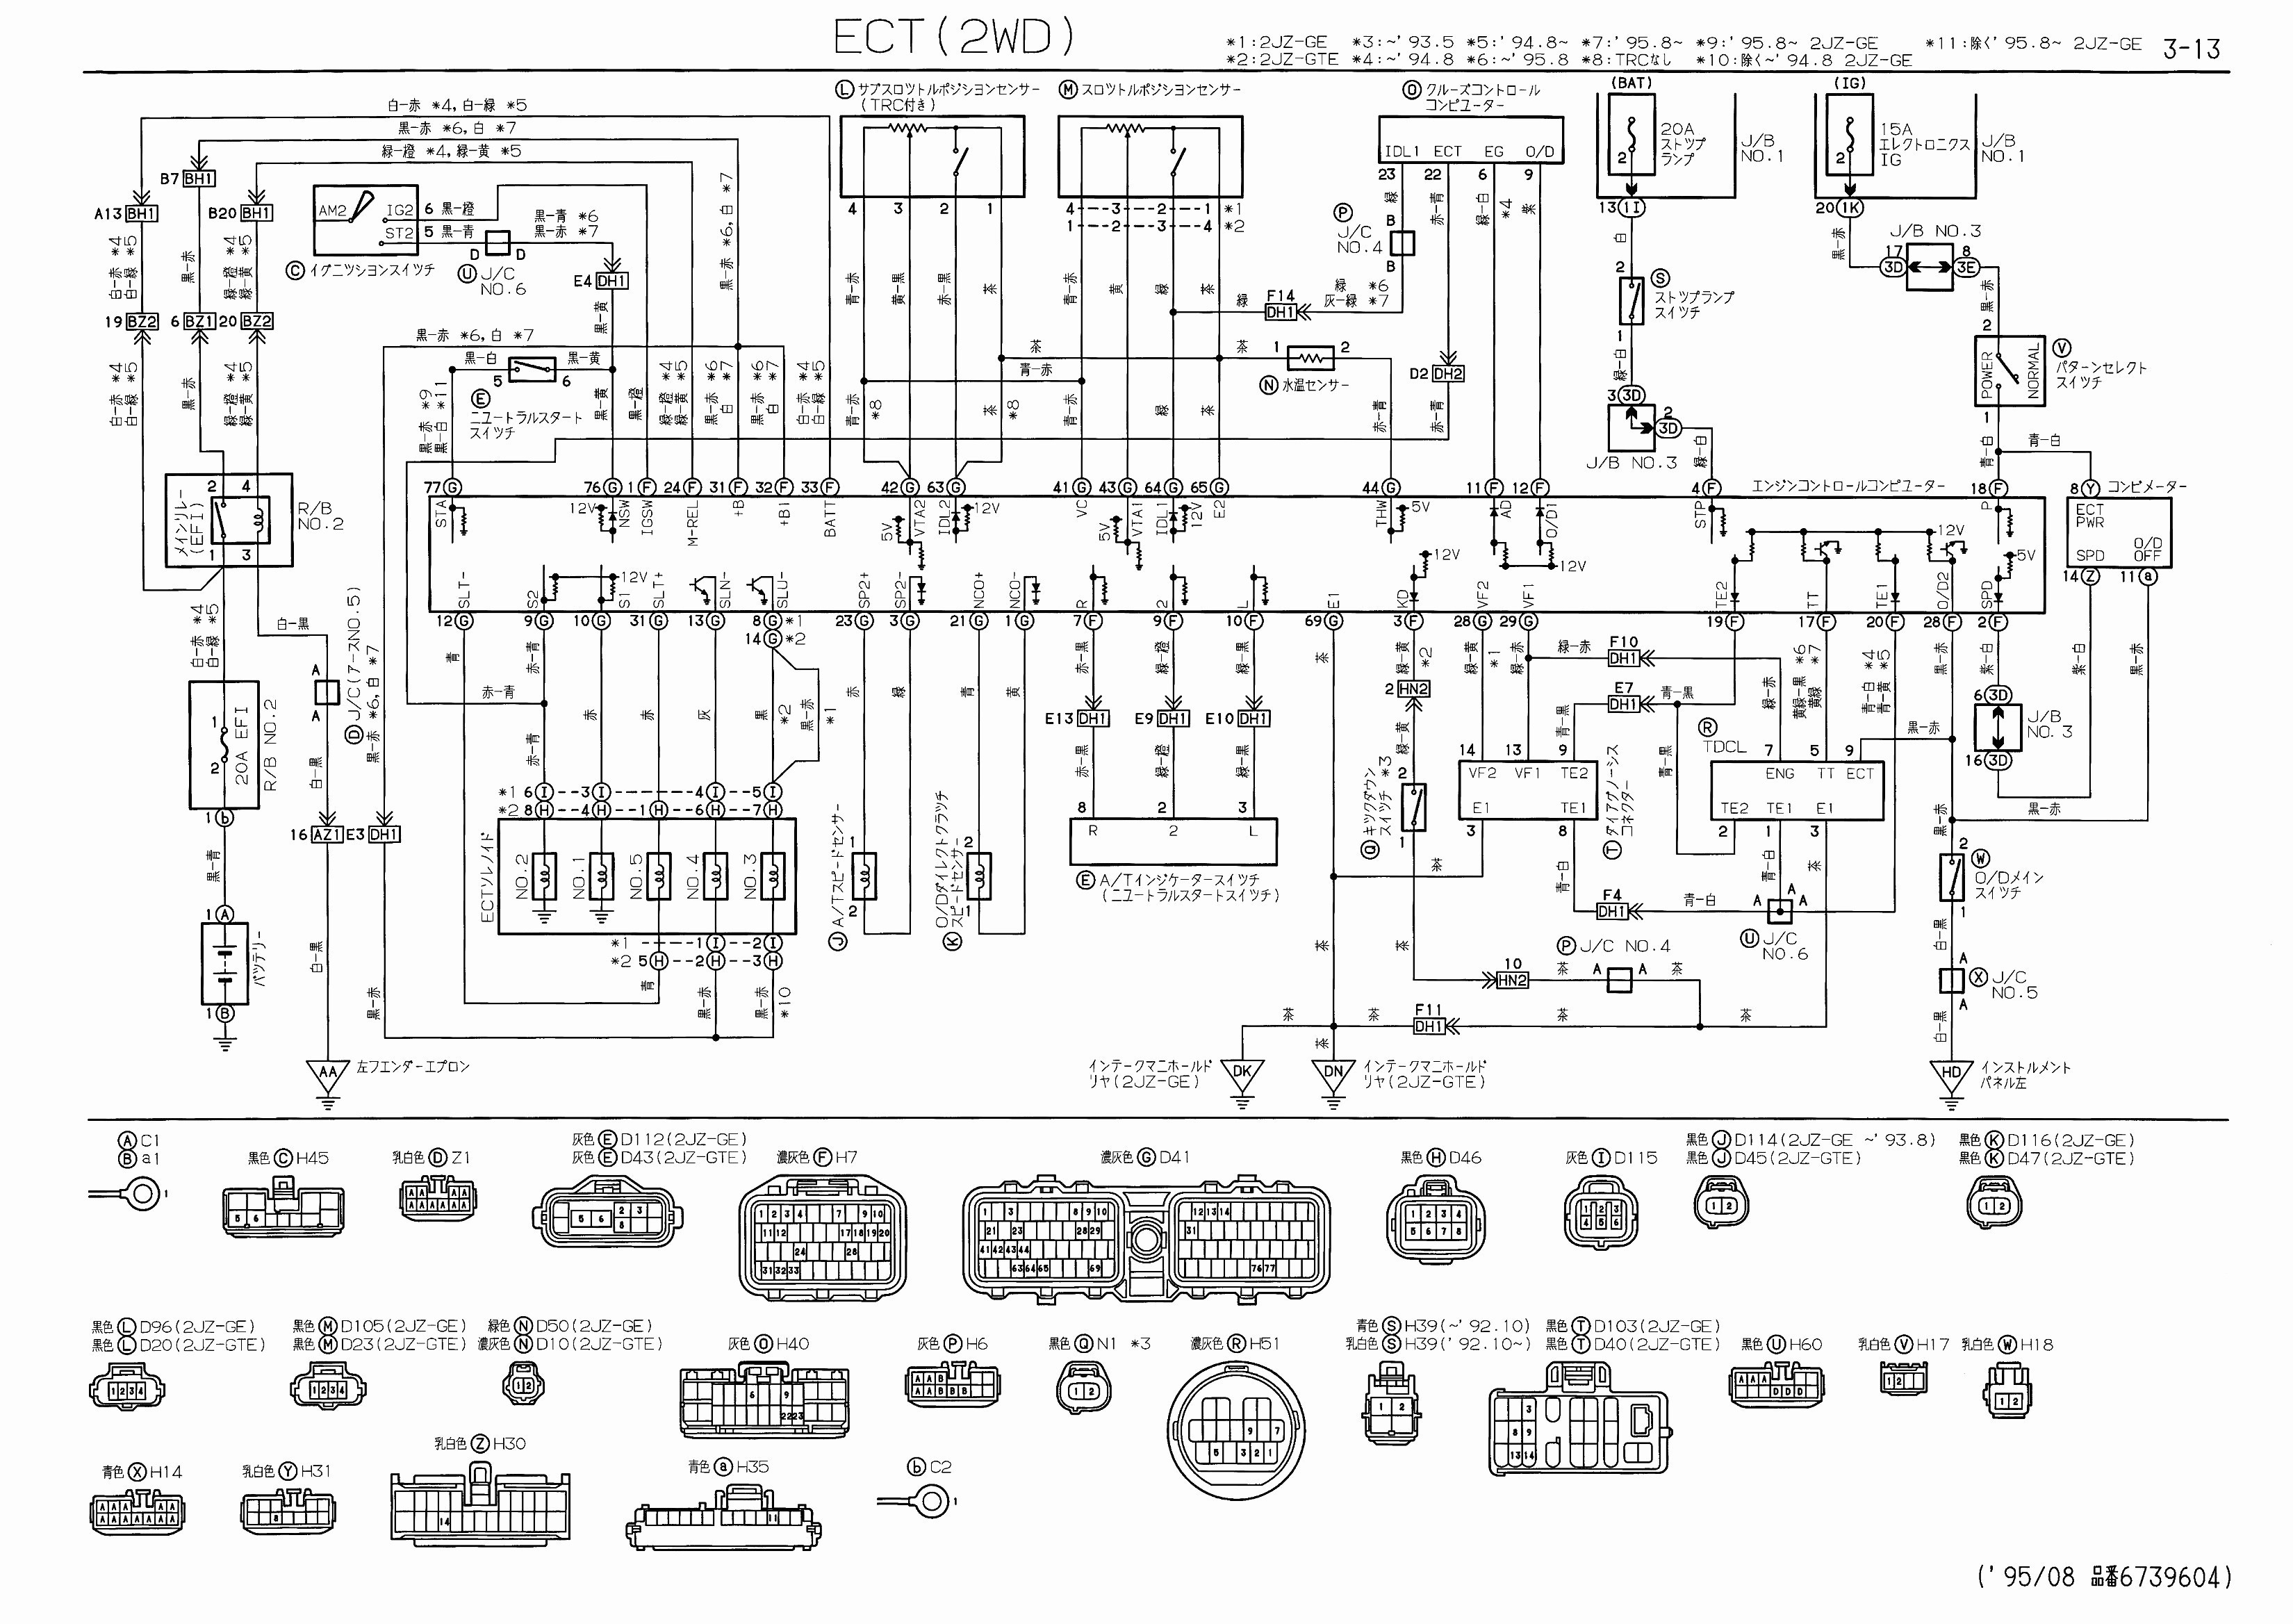 Infiniti Qx4 Engine Diagram Infiniti J30 Fuse Diagram Layout Wiring Diagrams • Of Infiniti Qx4 Engine Diagram